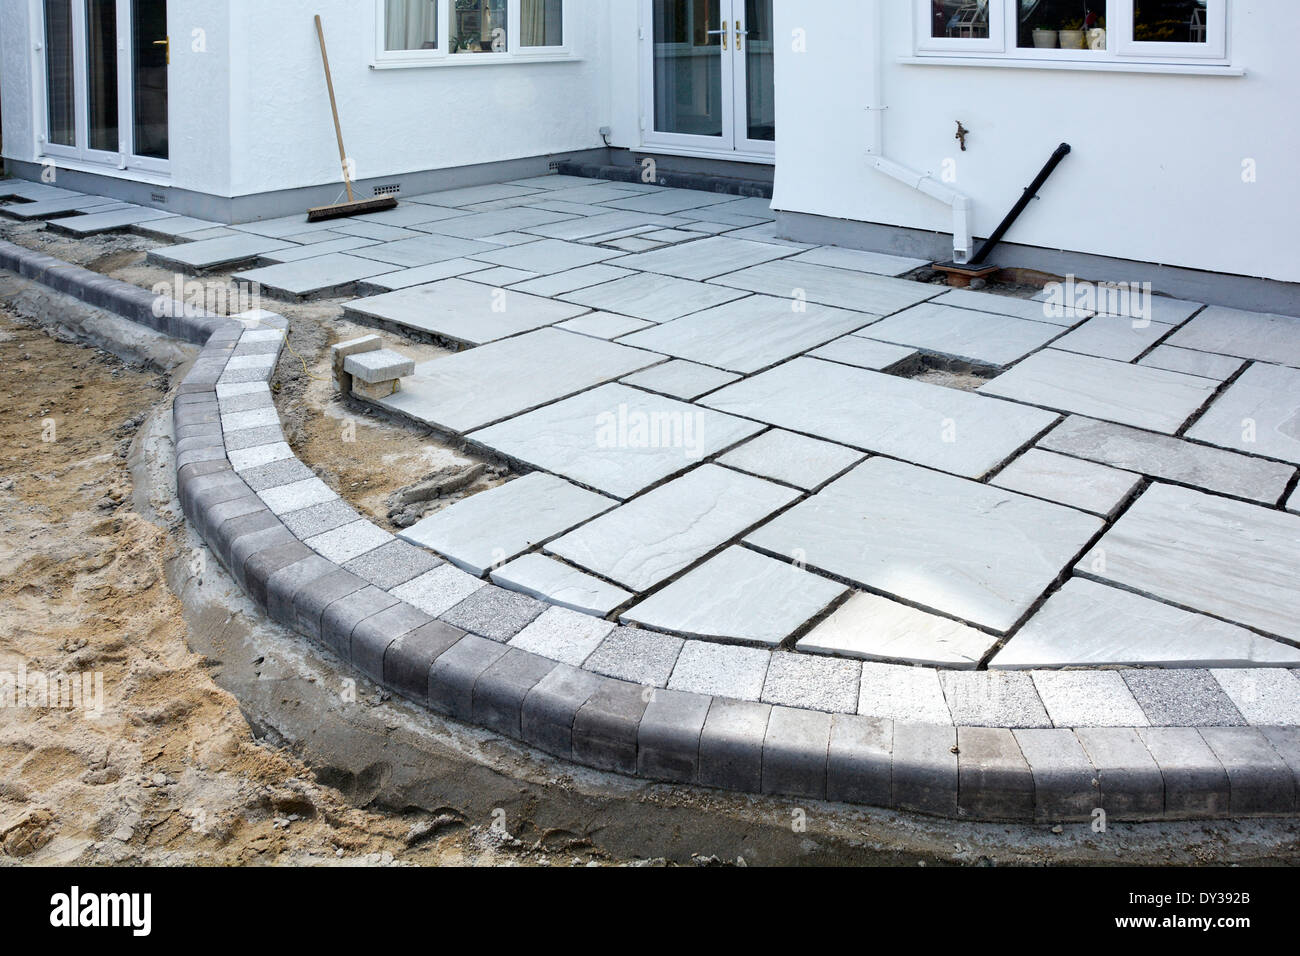 Paving Slabs Being Laid As A Patio To Back Garden Of